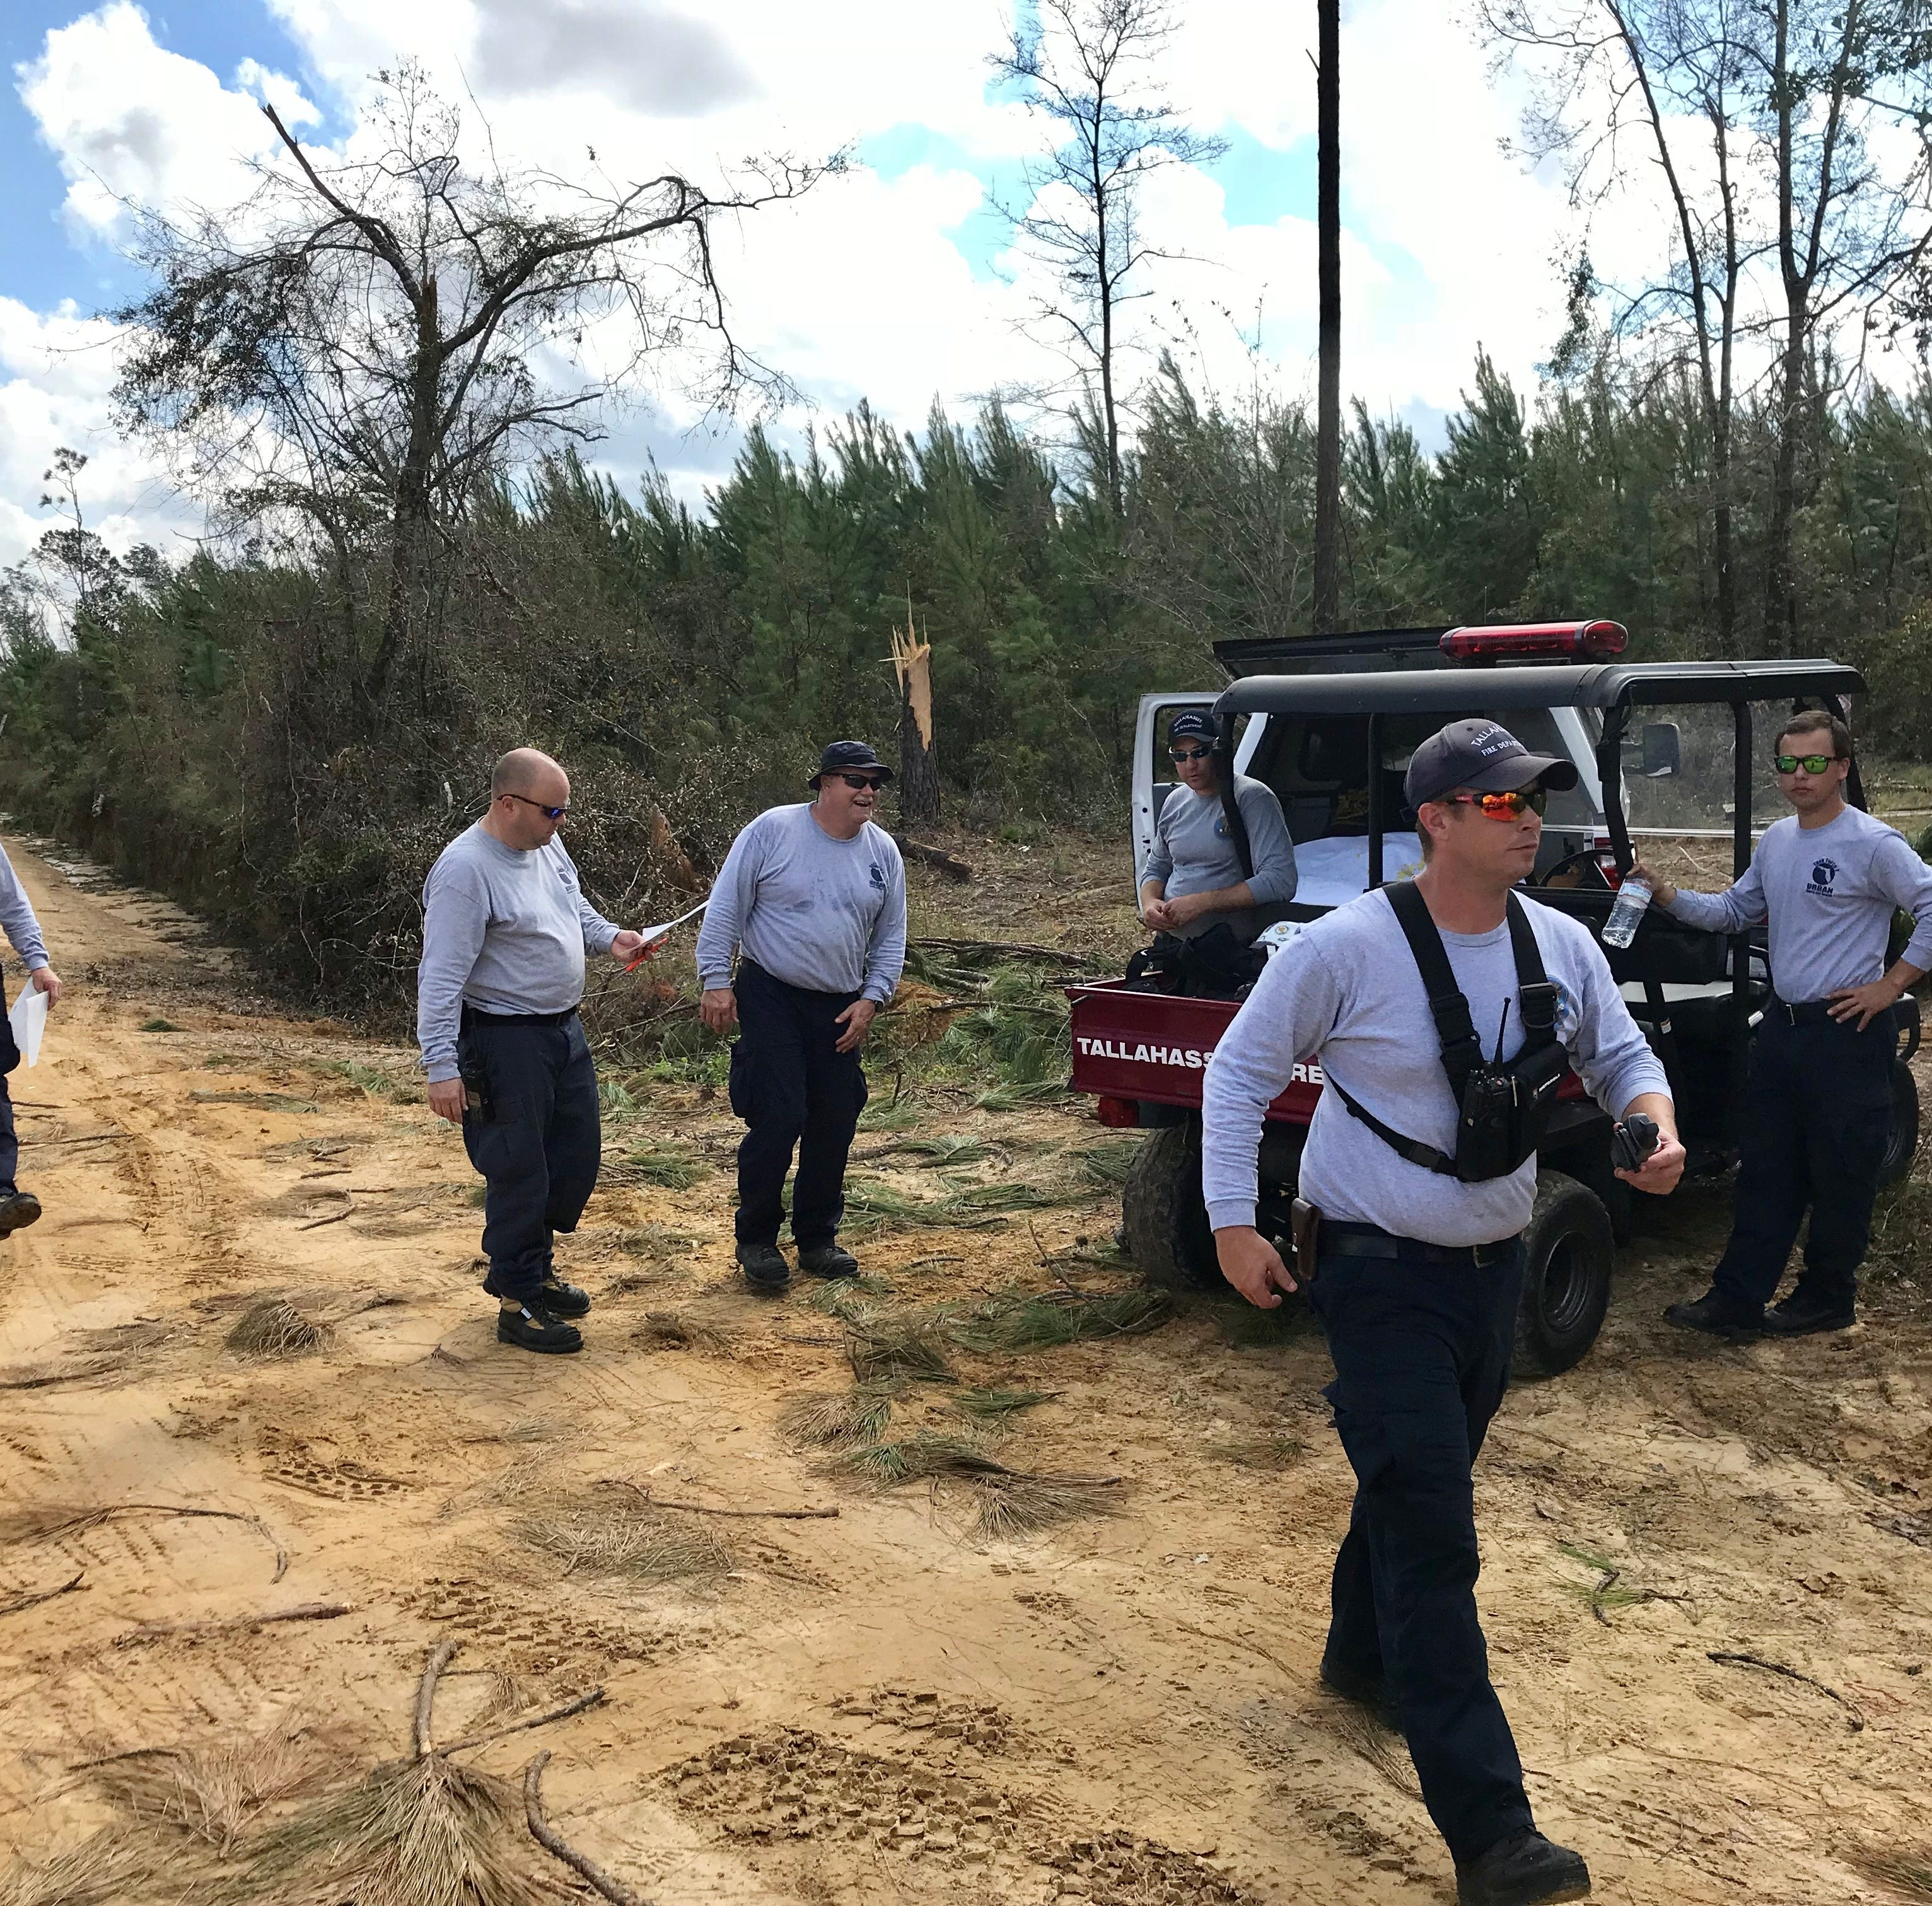 Tallahassee firefighters searching for Hurricane Michael victims in Jackson County